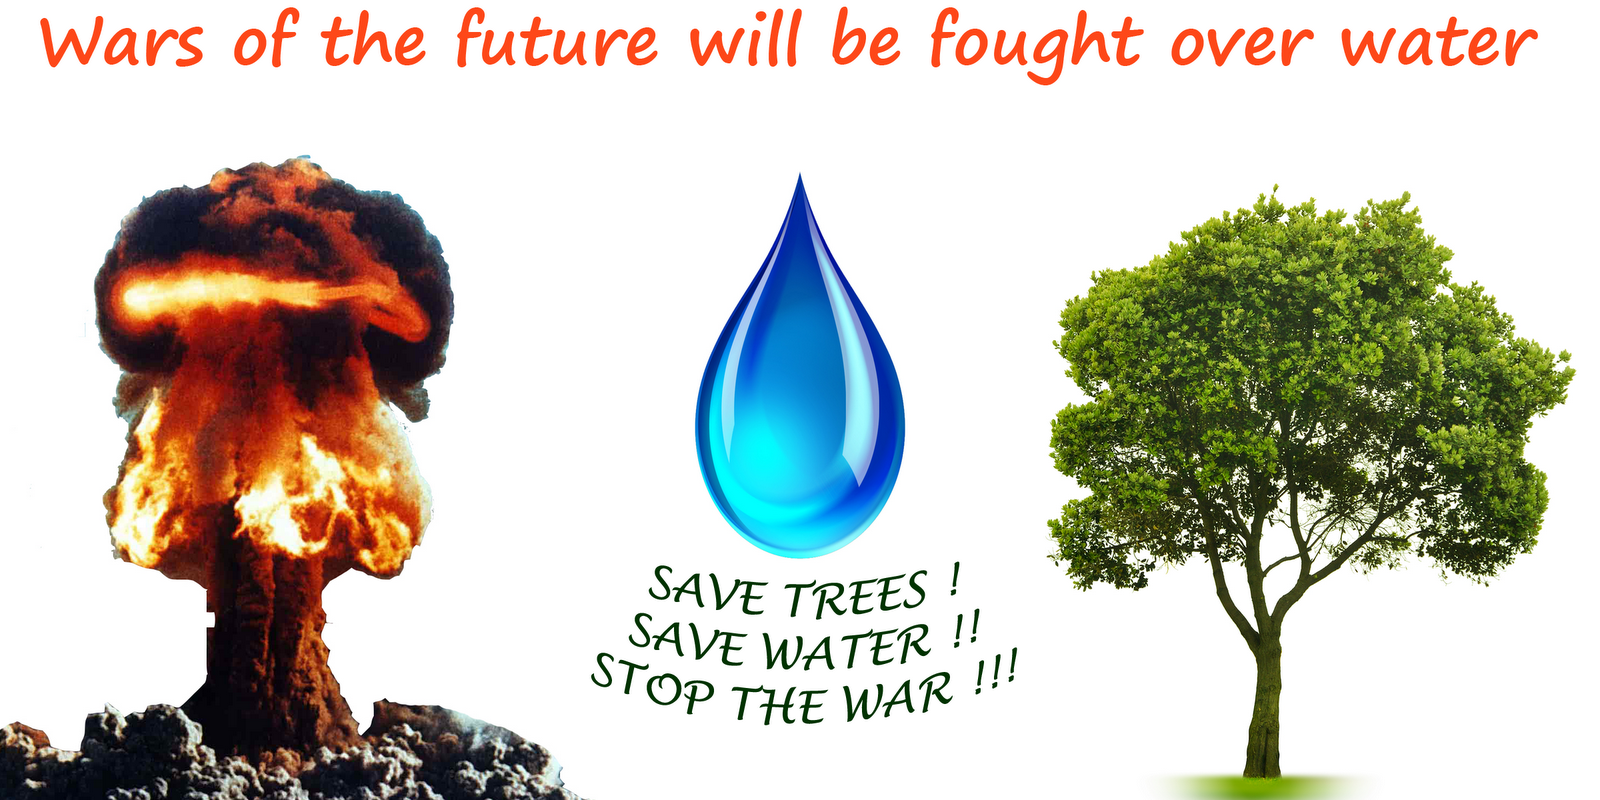 water pollution essays water pollution essay air pollution essay  save water save earth essay save the earth from pollution essay water in life essaysave earth